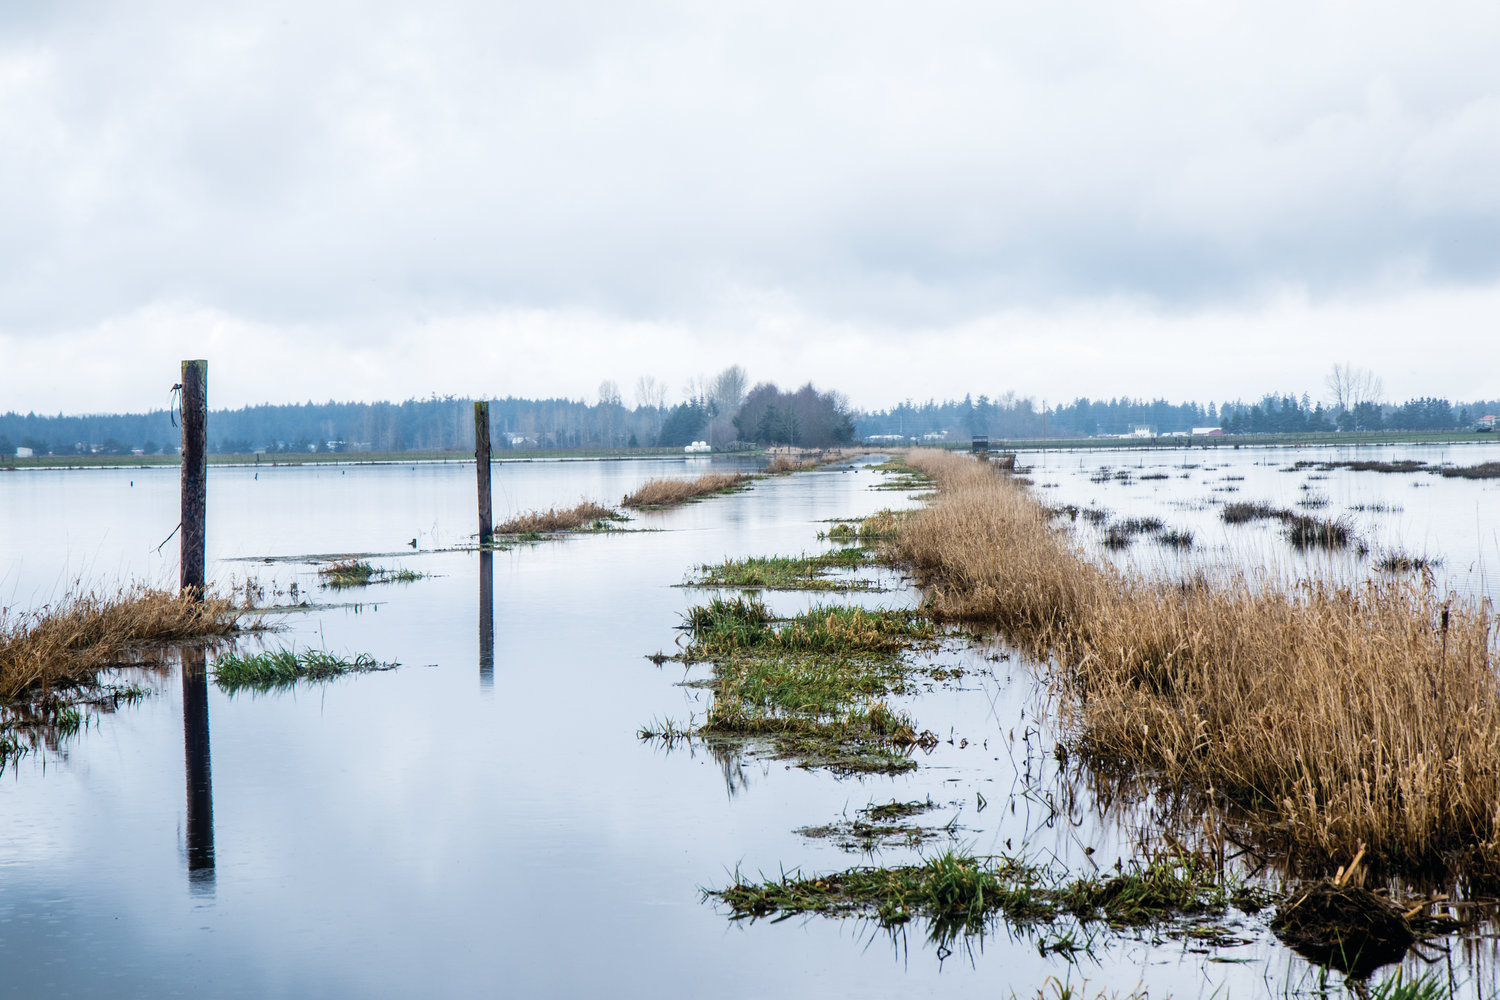 Hundreds of acres are under water